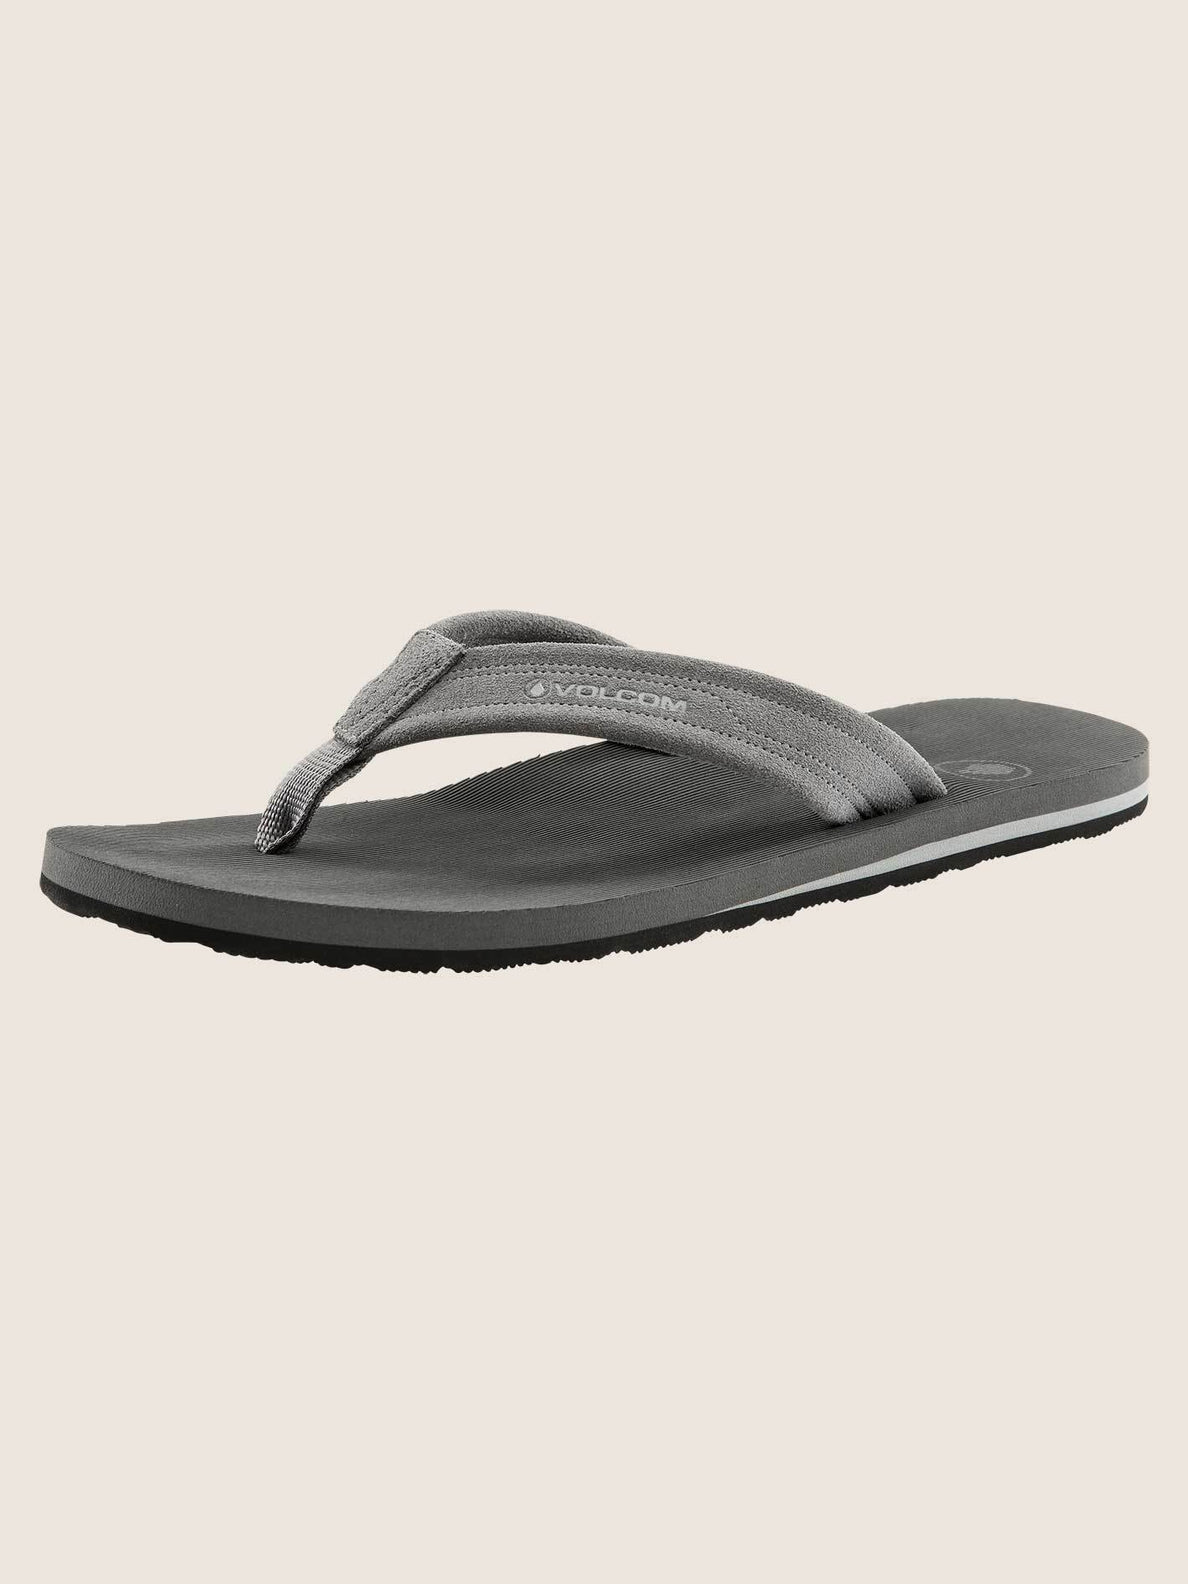 Driftin Leather Sandals In Neutral Grey, Back View